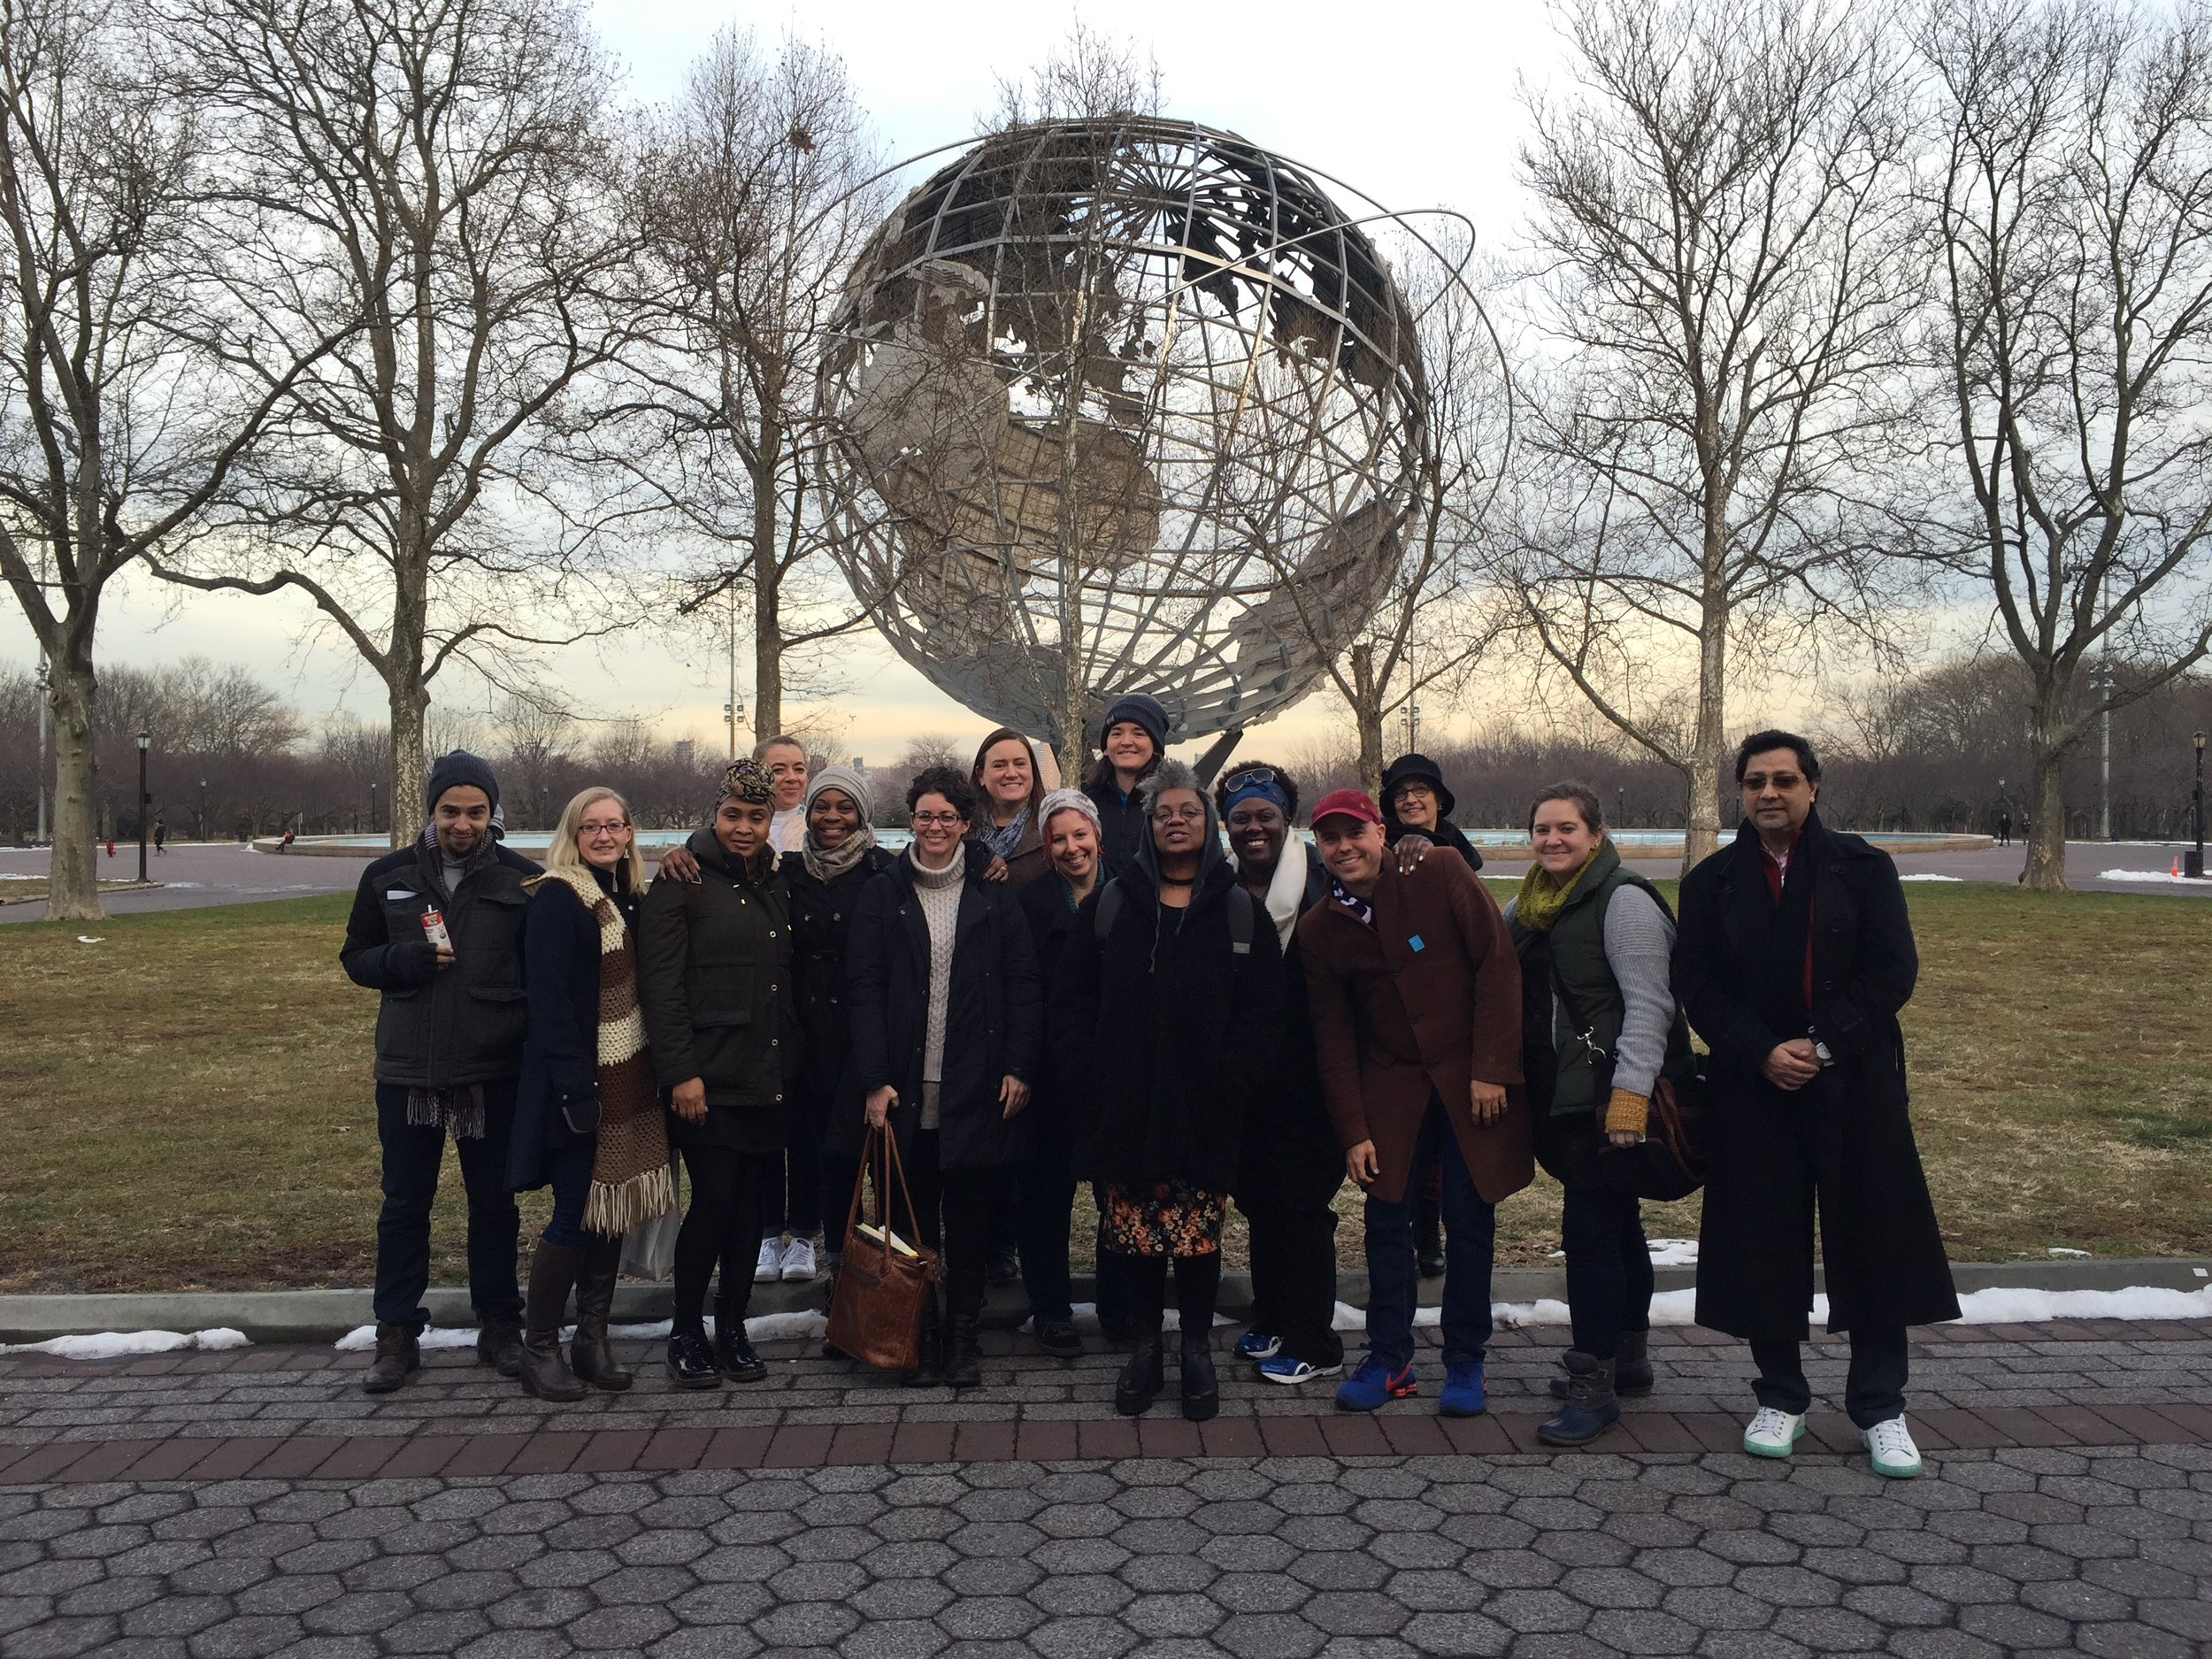 IDSVA Students outside the Queens Museum, New York, January 2017. Photo by Simonetta Moro